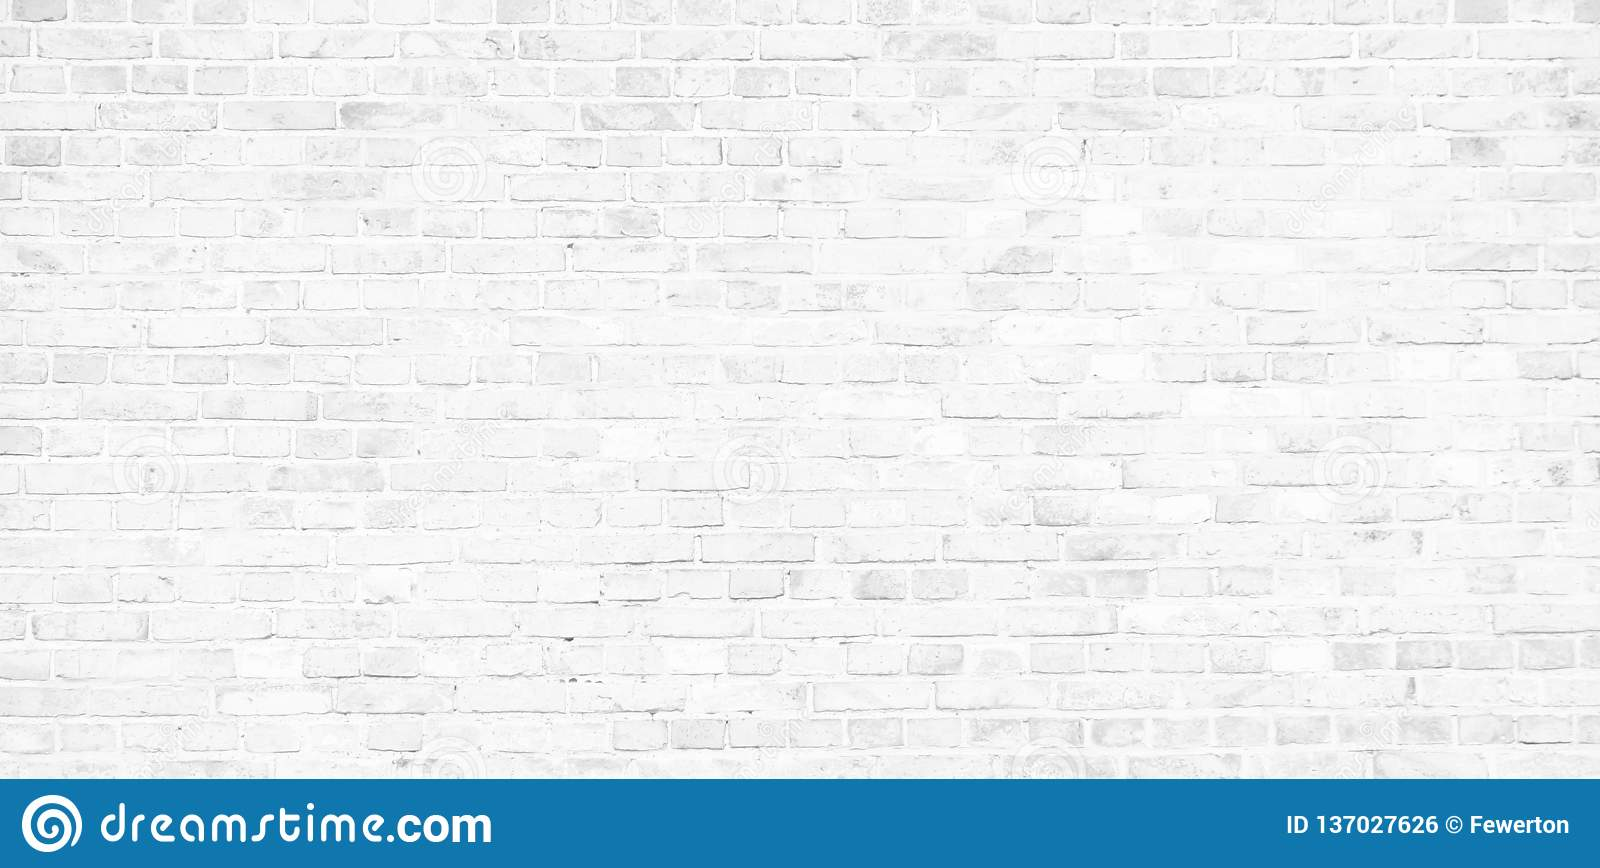 Simple white brick wall with light gray shades seamless pattern surface texture background in banner wide panorama